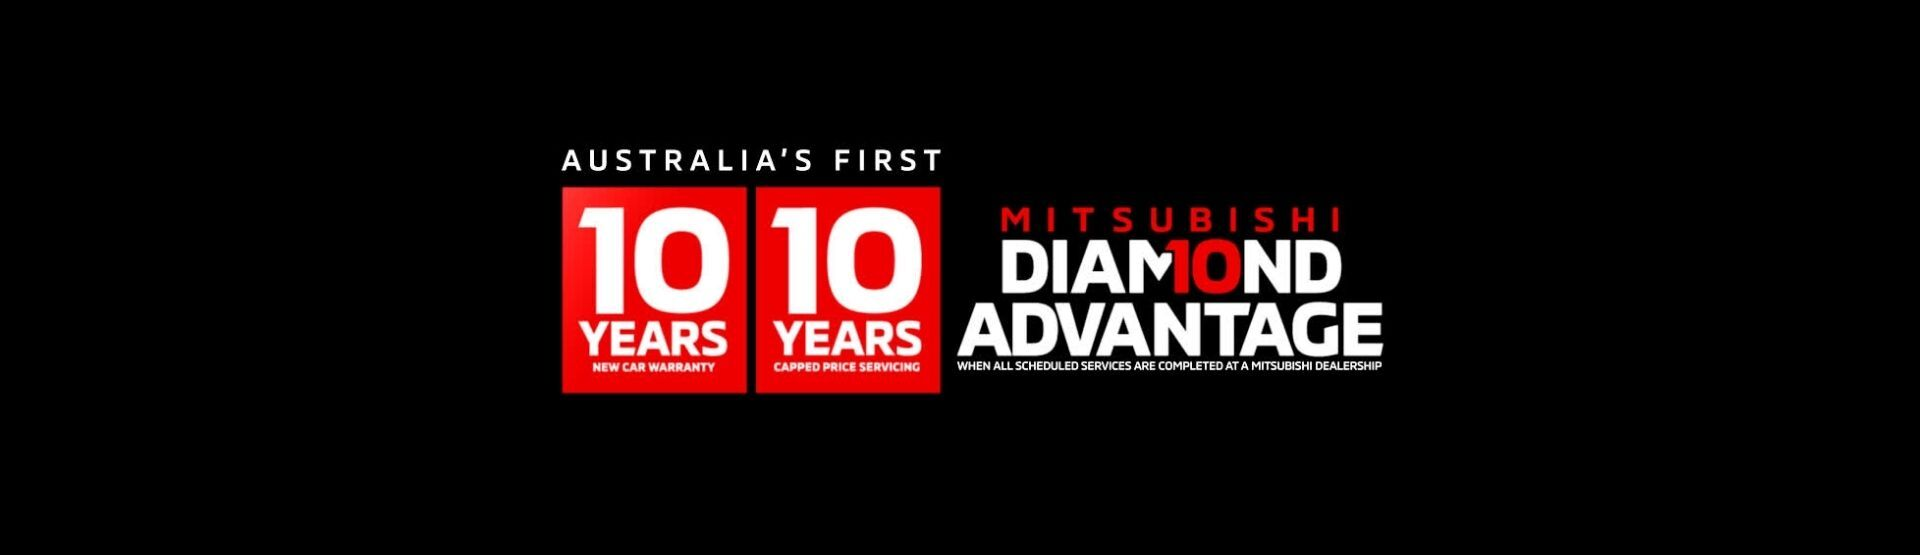 Mitsubishi Offers. Find out more.